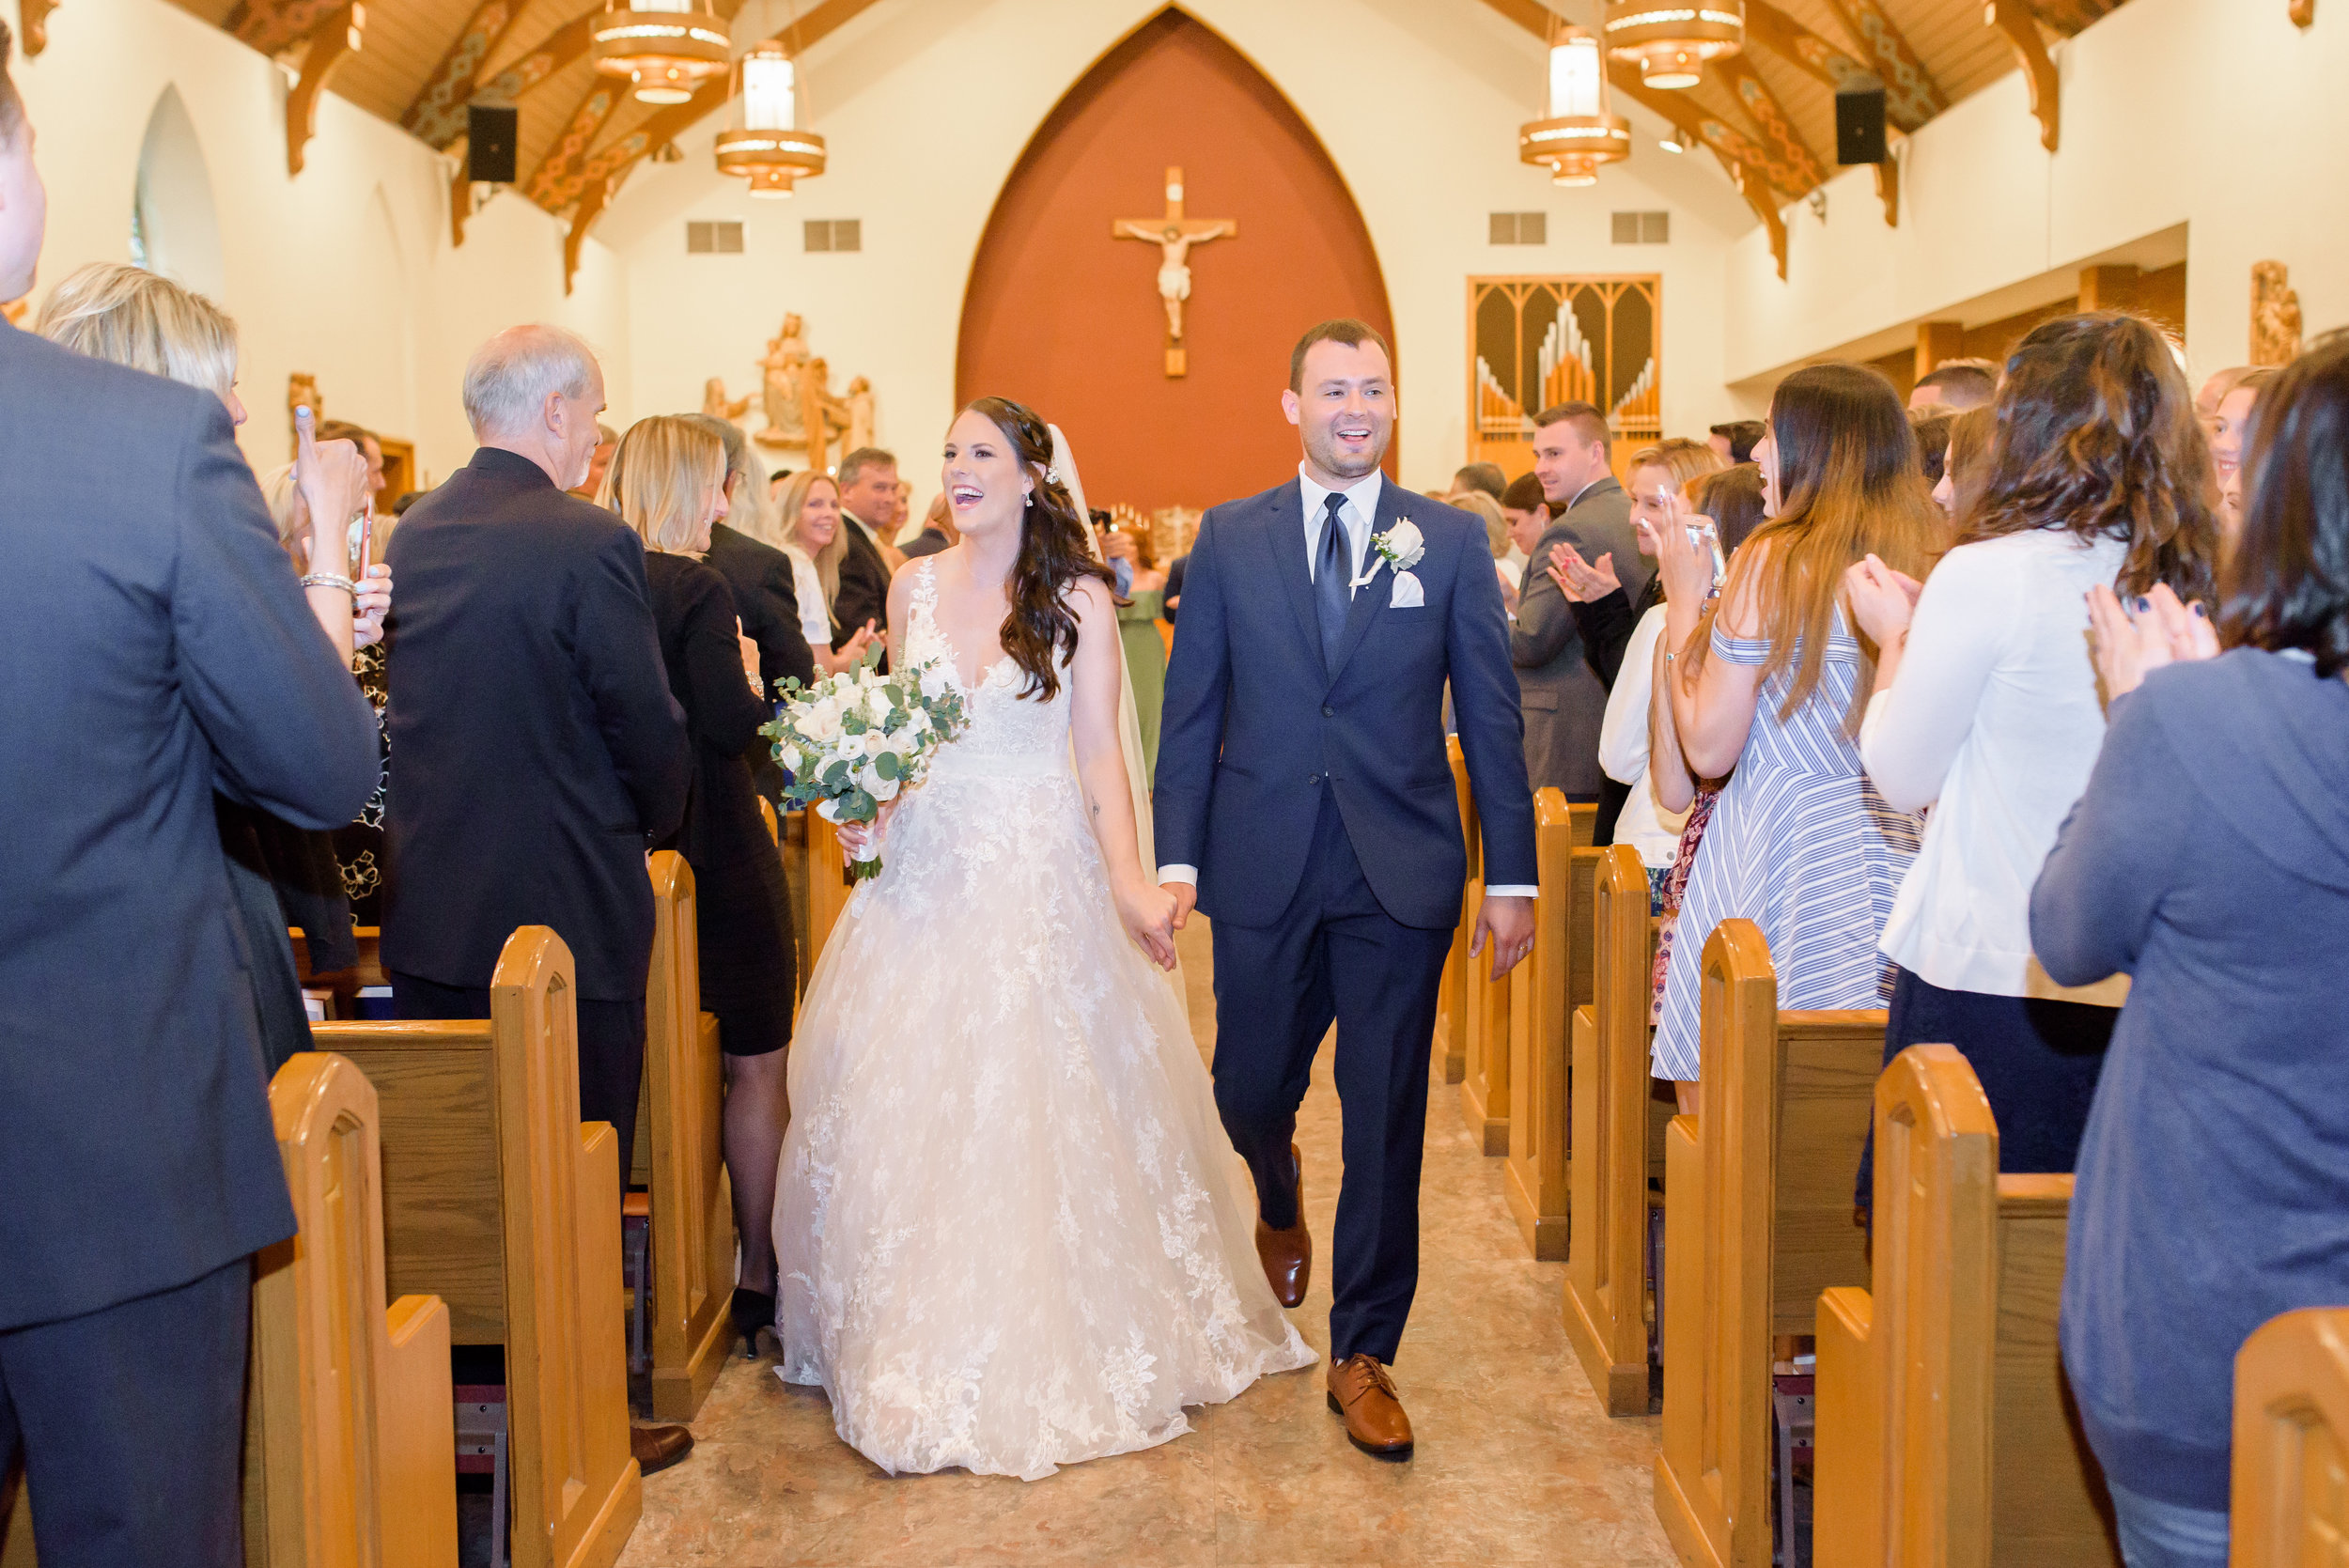 GALLERY-2019-04-26 Katelyn and Nick's Wedding388904-141.jpg